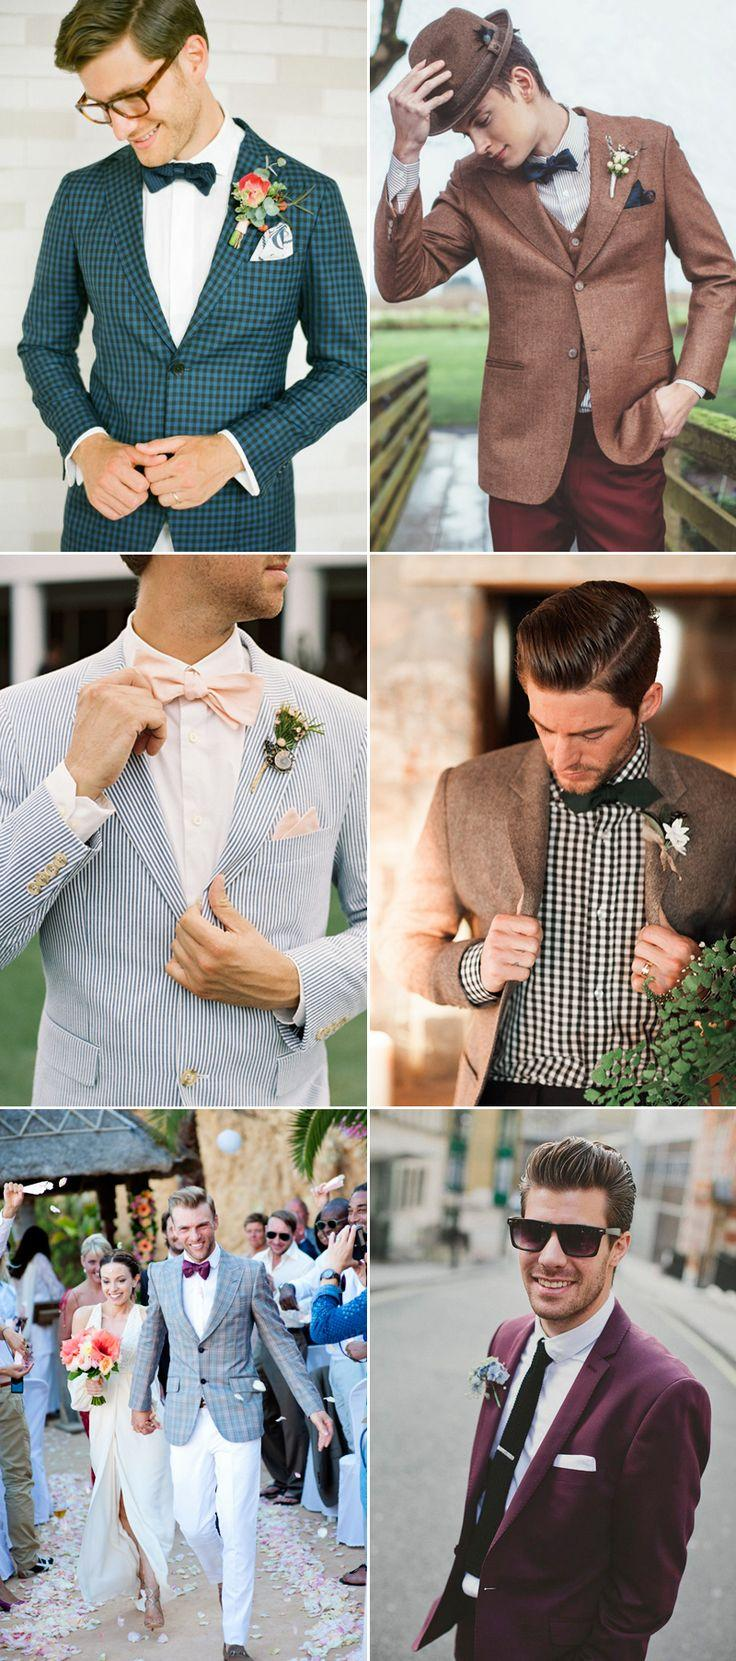 Boda - How To Style Your Groom Vintage? Ways And Items To Create The Perfect Vintage-Inspired Groom Attire